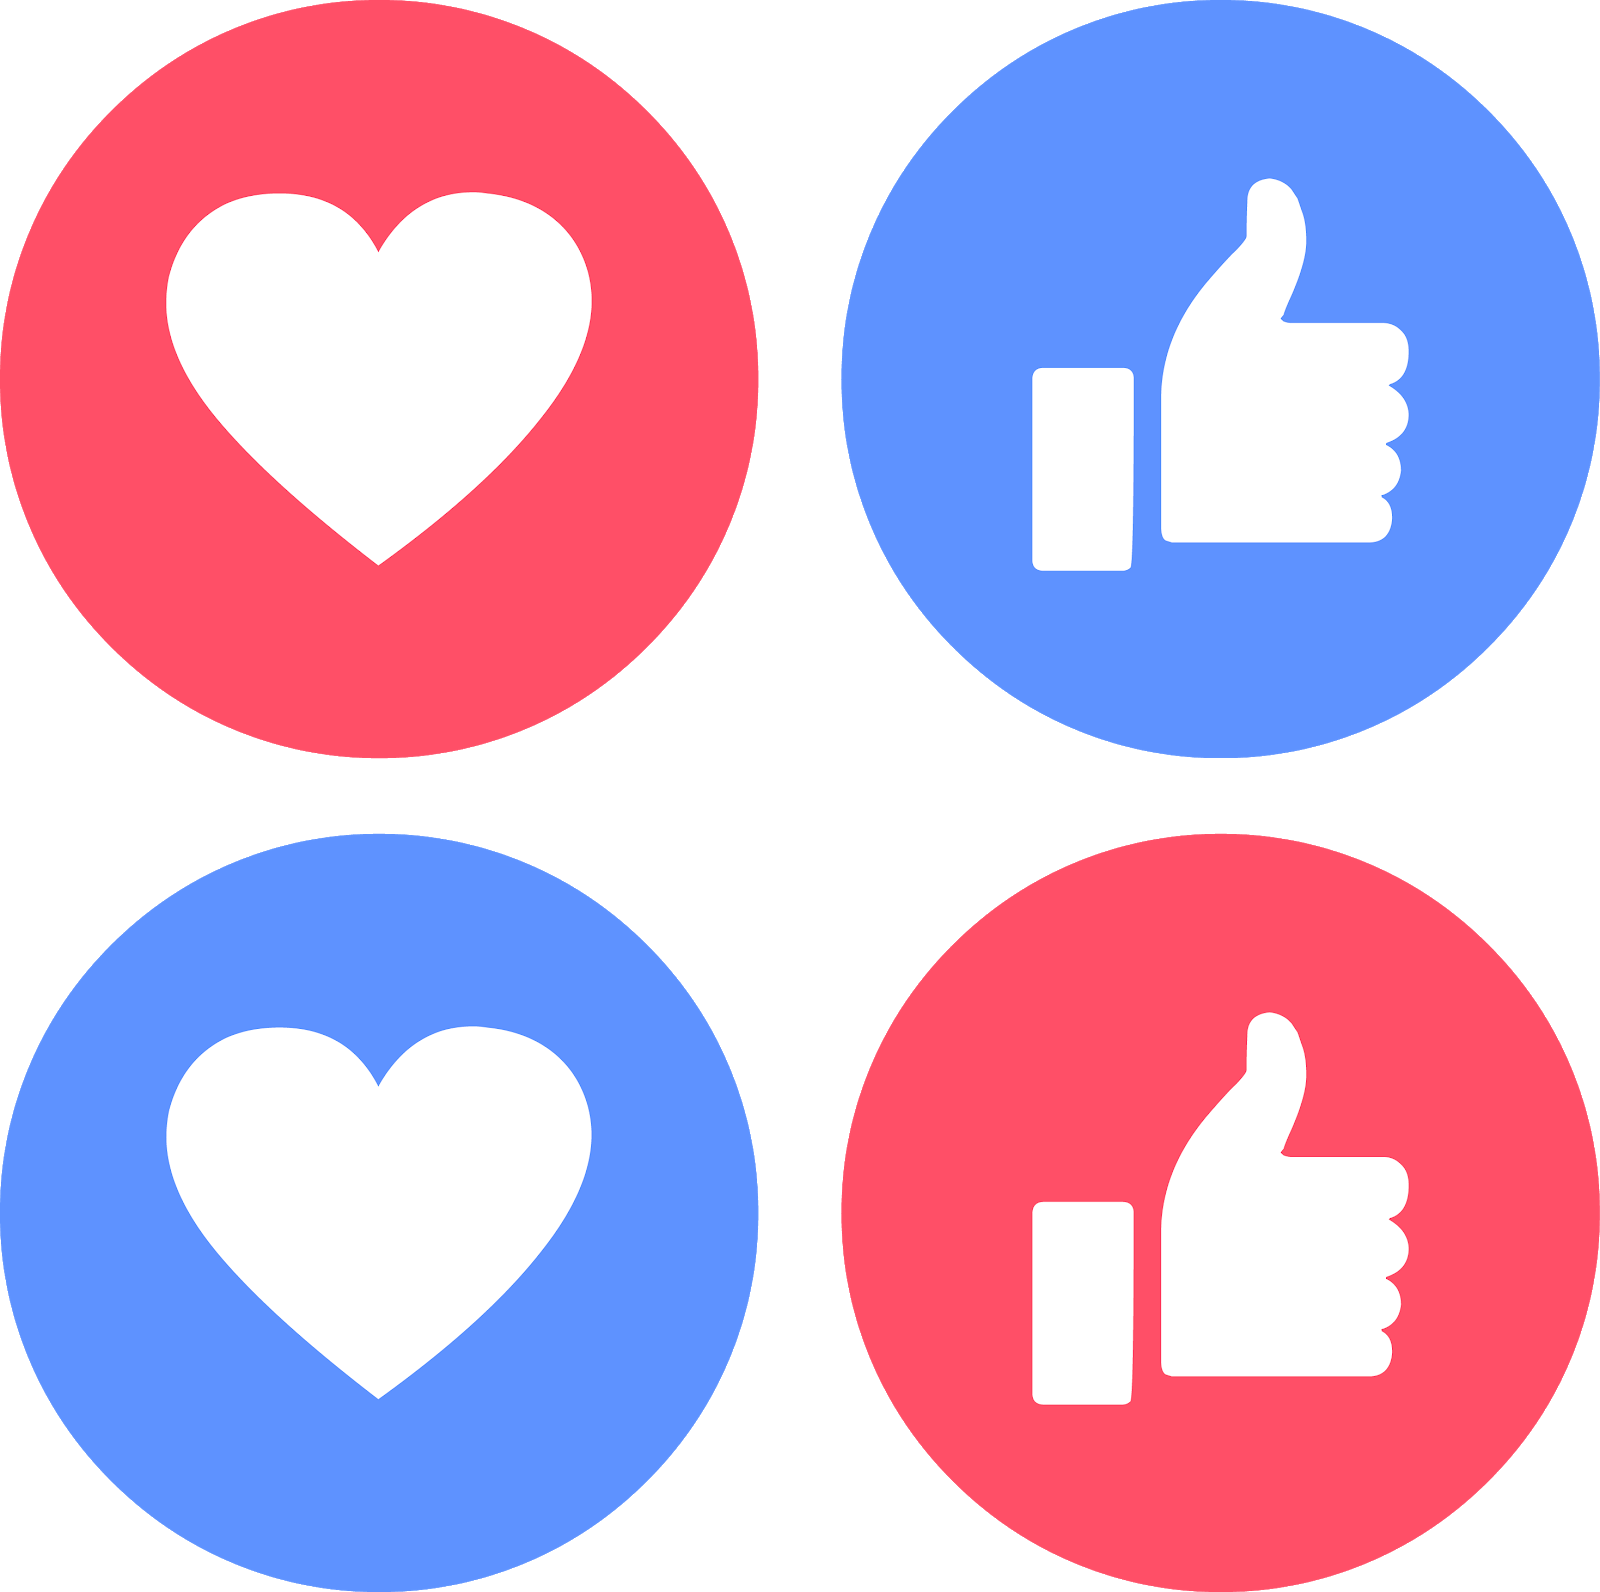 Facebook like love clipart graphic freeuse stock download icons like love facebook svg eps png psd ai - el fonts vectors graphic freeuse stock